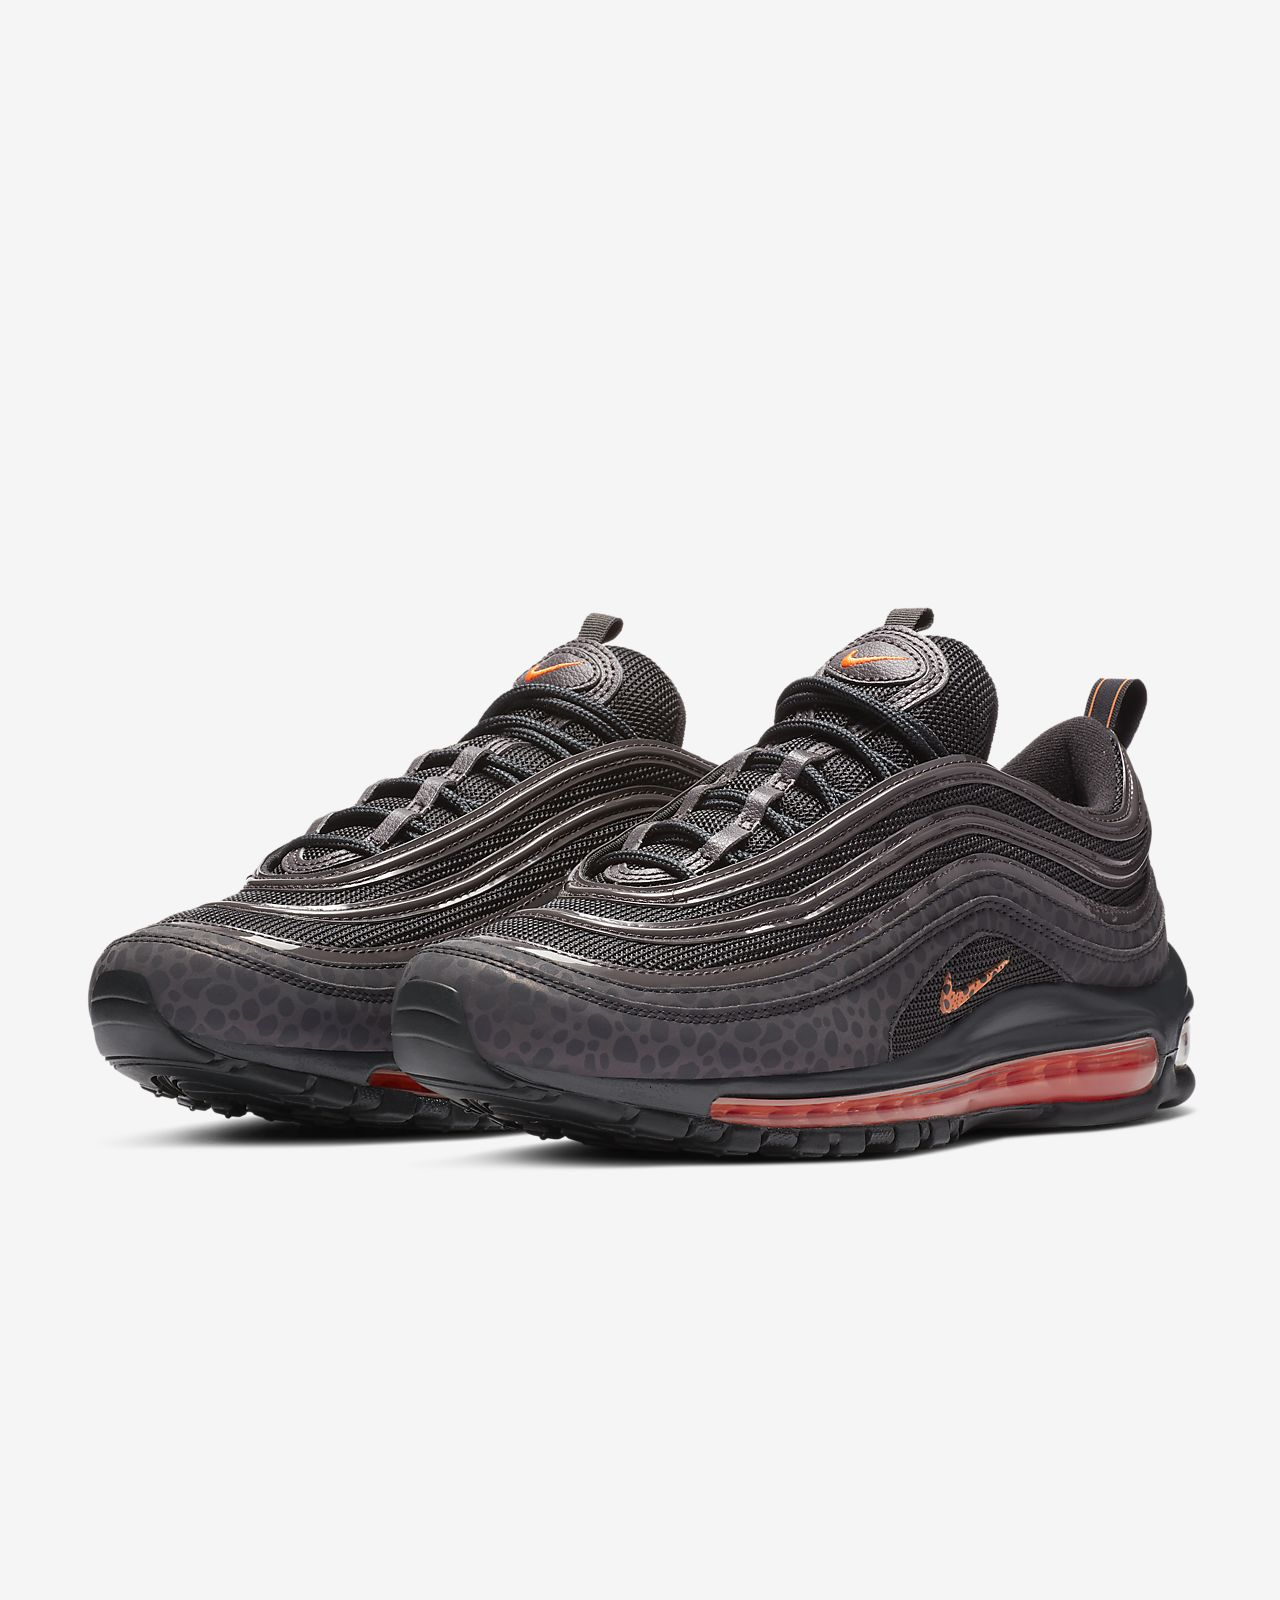 hot sale online 67bdd 269c8 ... Nike Air Max 97 SE Reflective Men s Shoe